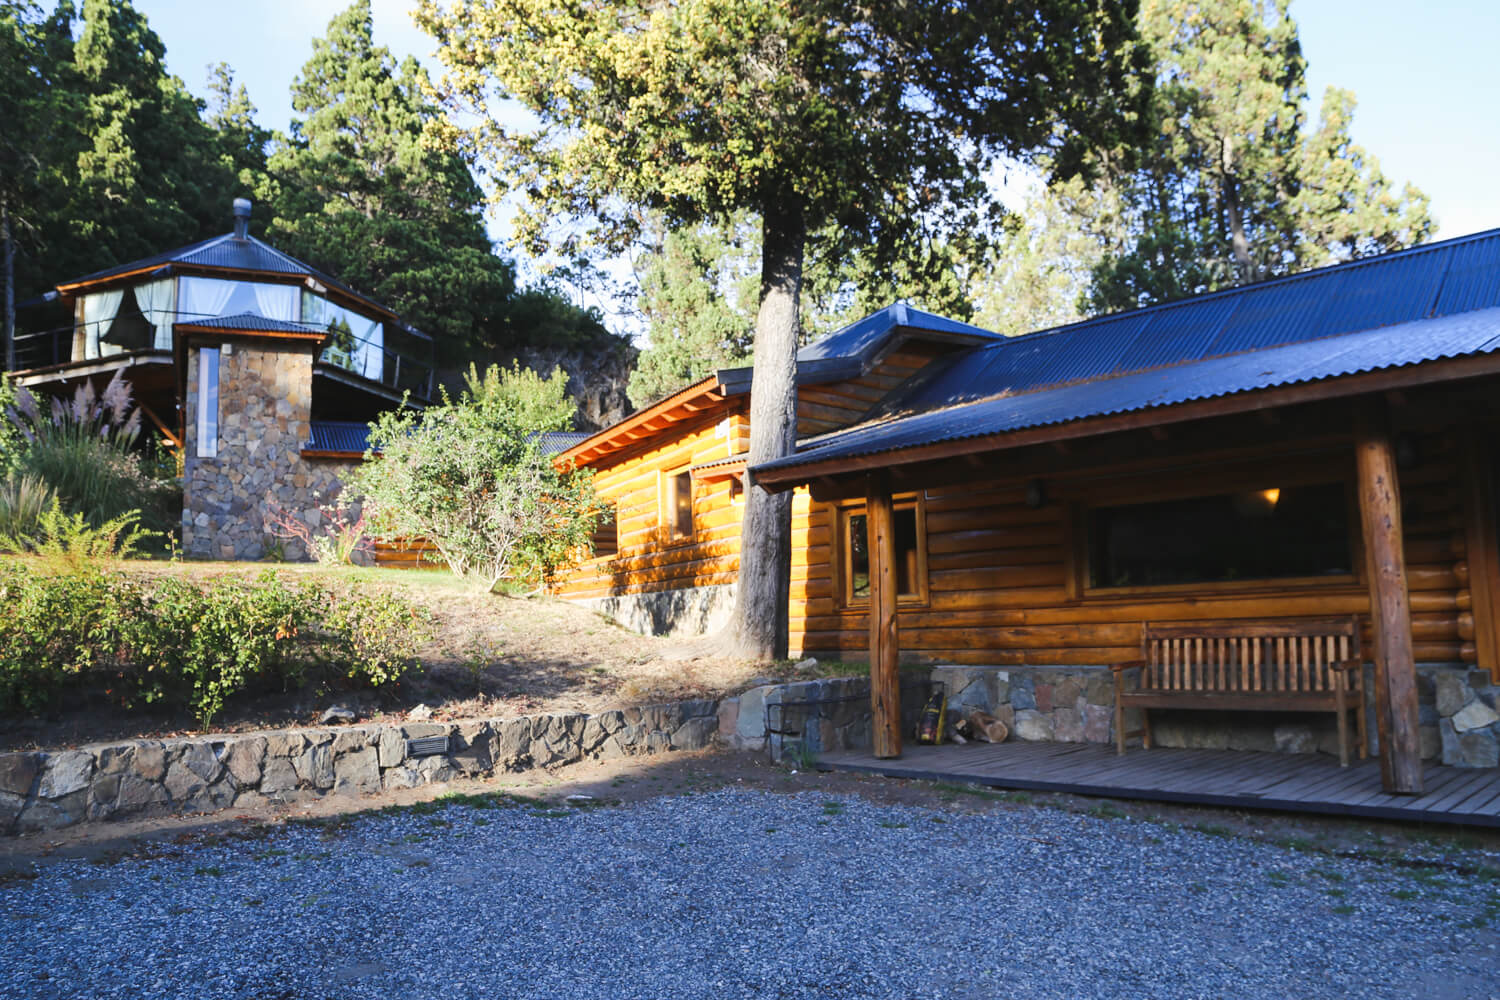 A log cabin in the woods at one of the best San Martin de los Andes hotels